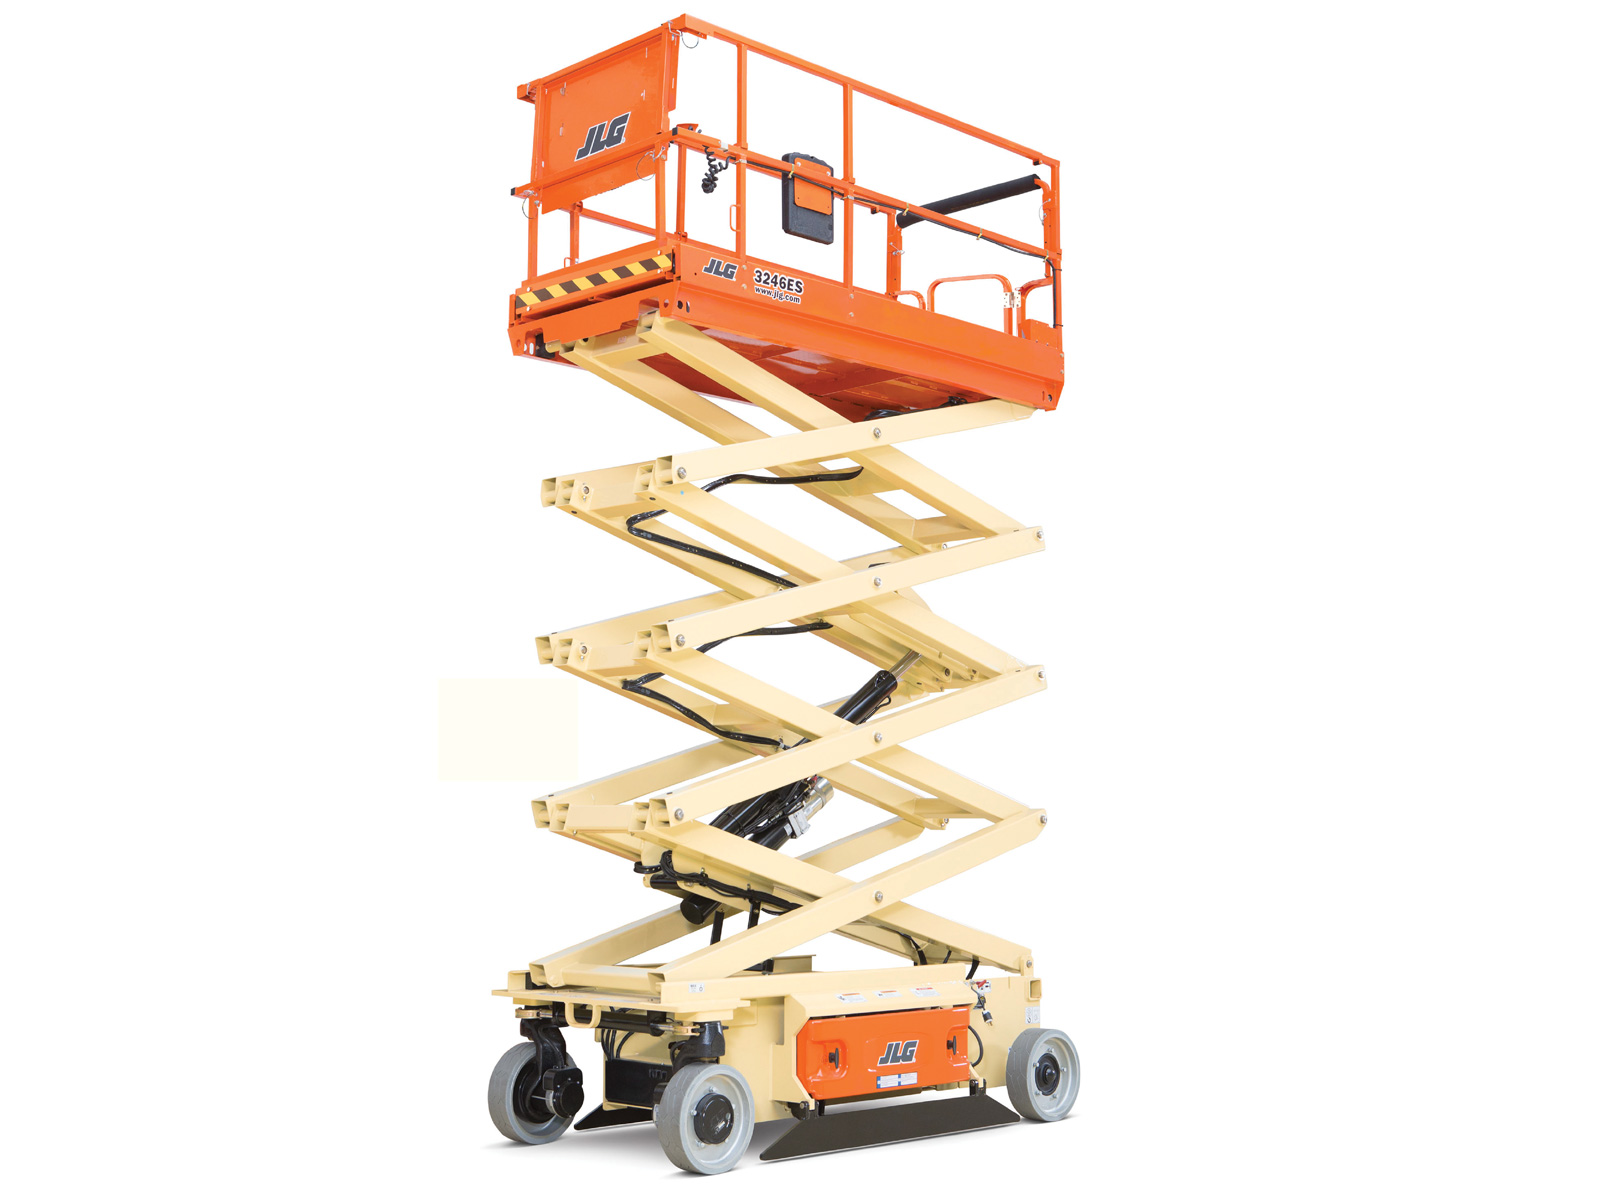 [DIAGRAM_1JK]  3246ES Electric Scissor Lift | JLG | Jlg Wiring Schematics |  | JLG